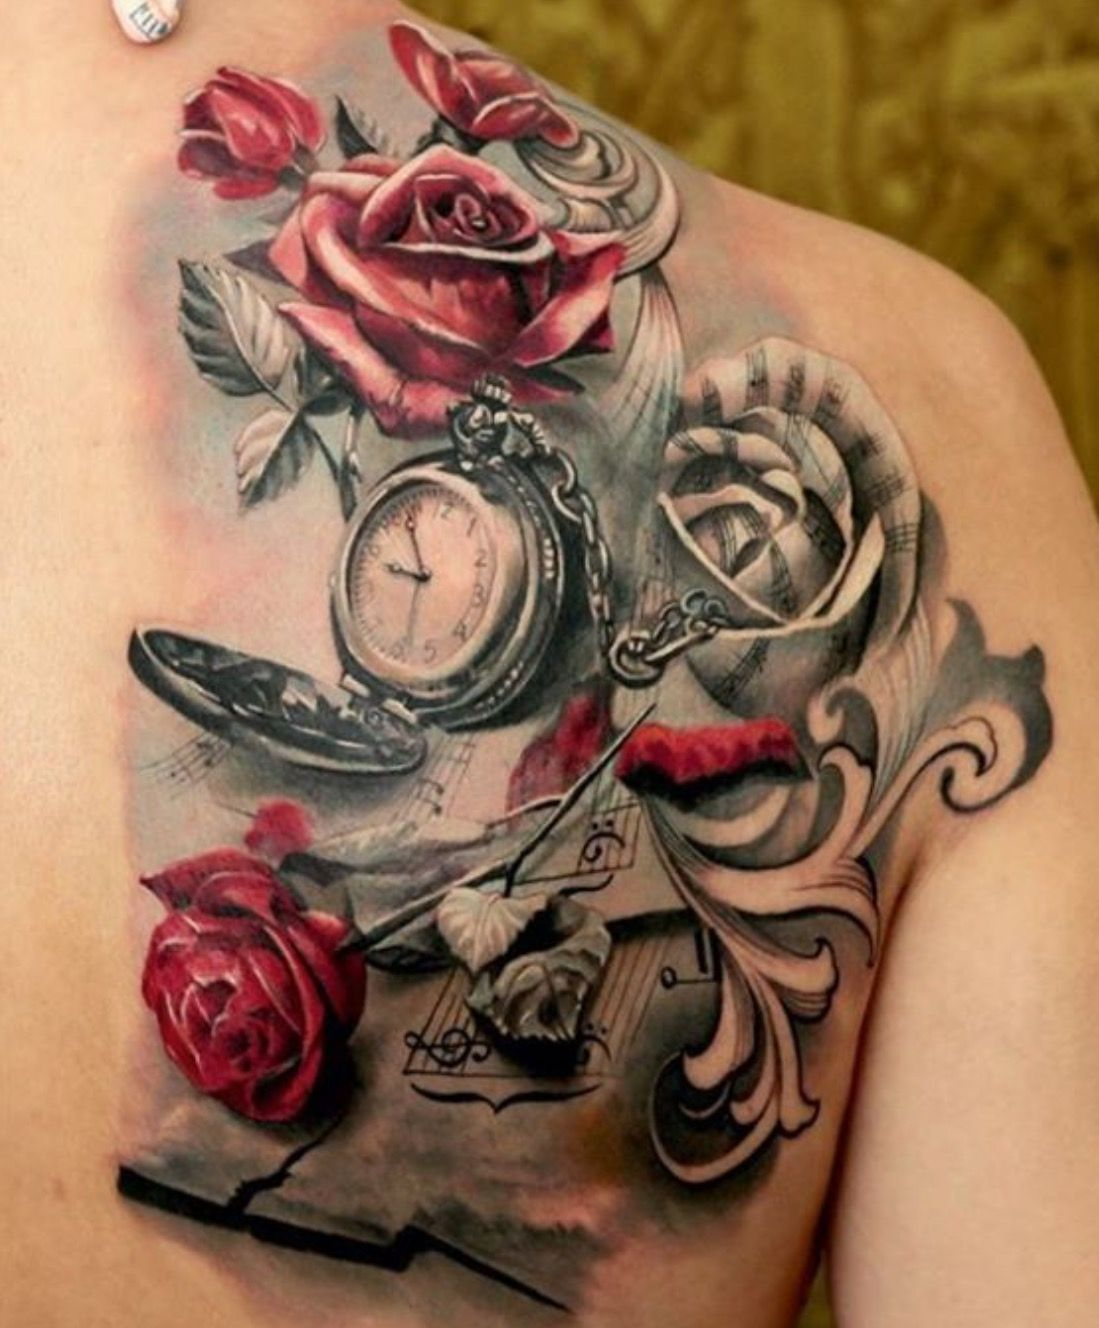 Tatuaggio Specchio For Those Music And Flower Lovers Pocket Watch Tattoos